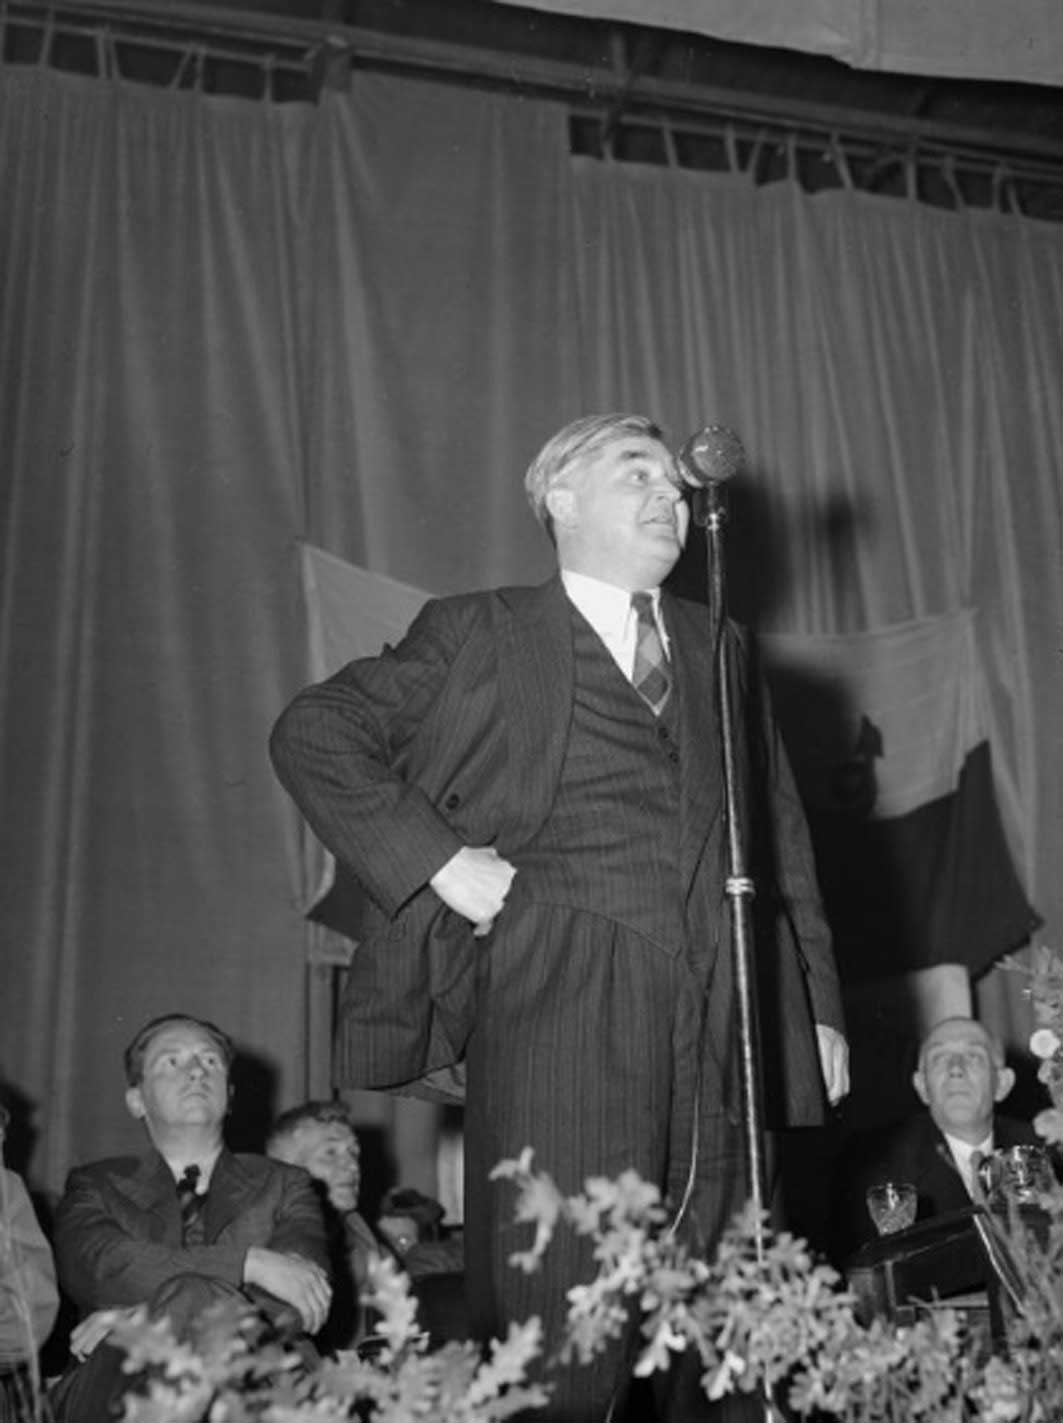 The National library of Wales's appeal for Aneurin Bevan archives, material about his life and work, marks Aneurin Bevan's birthday on November 15, 1897.